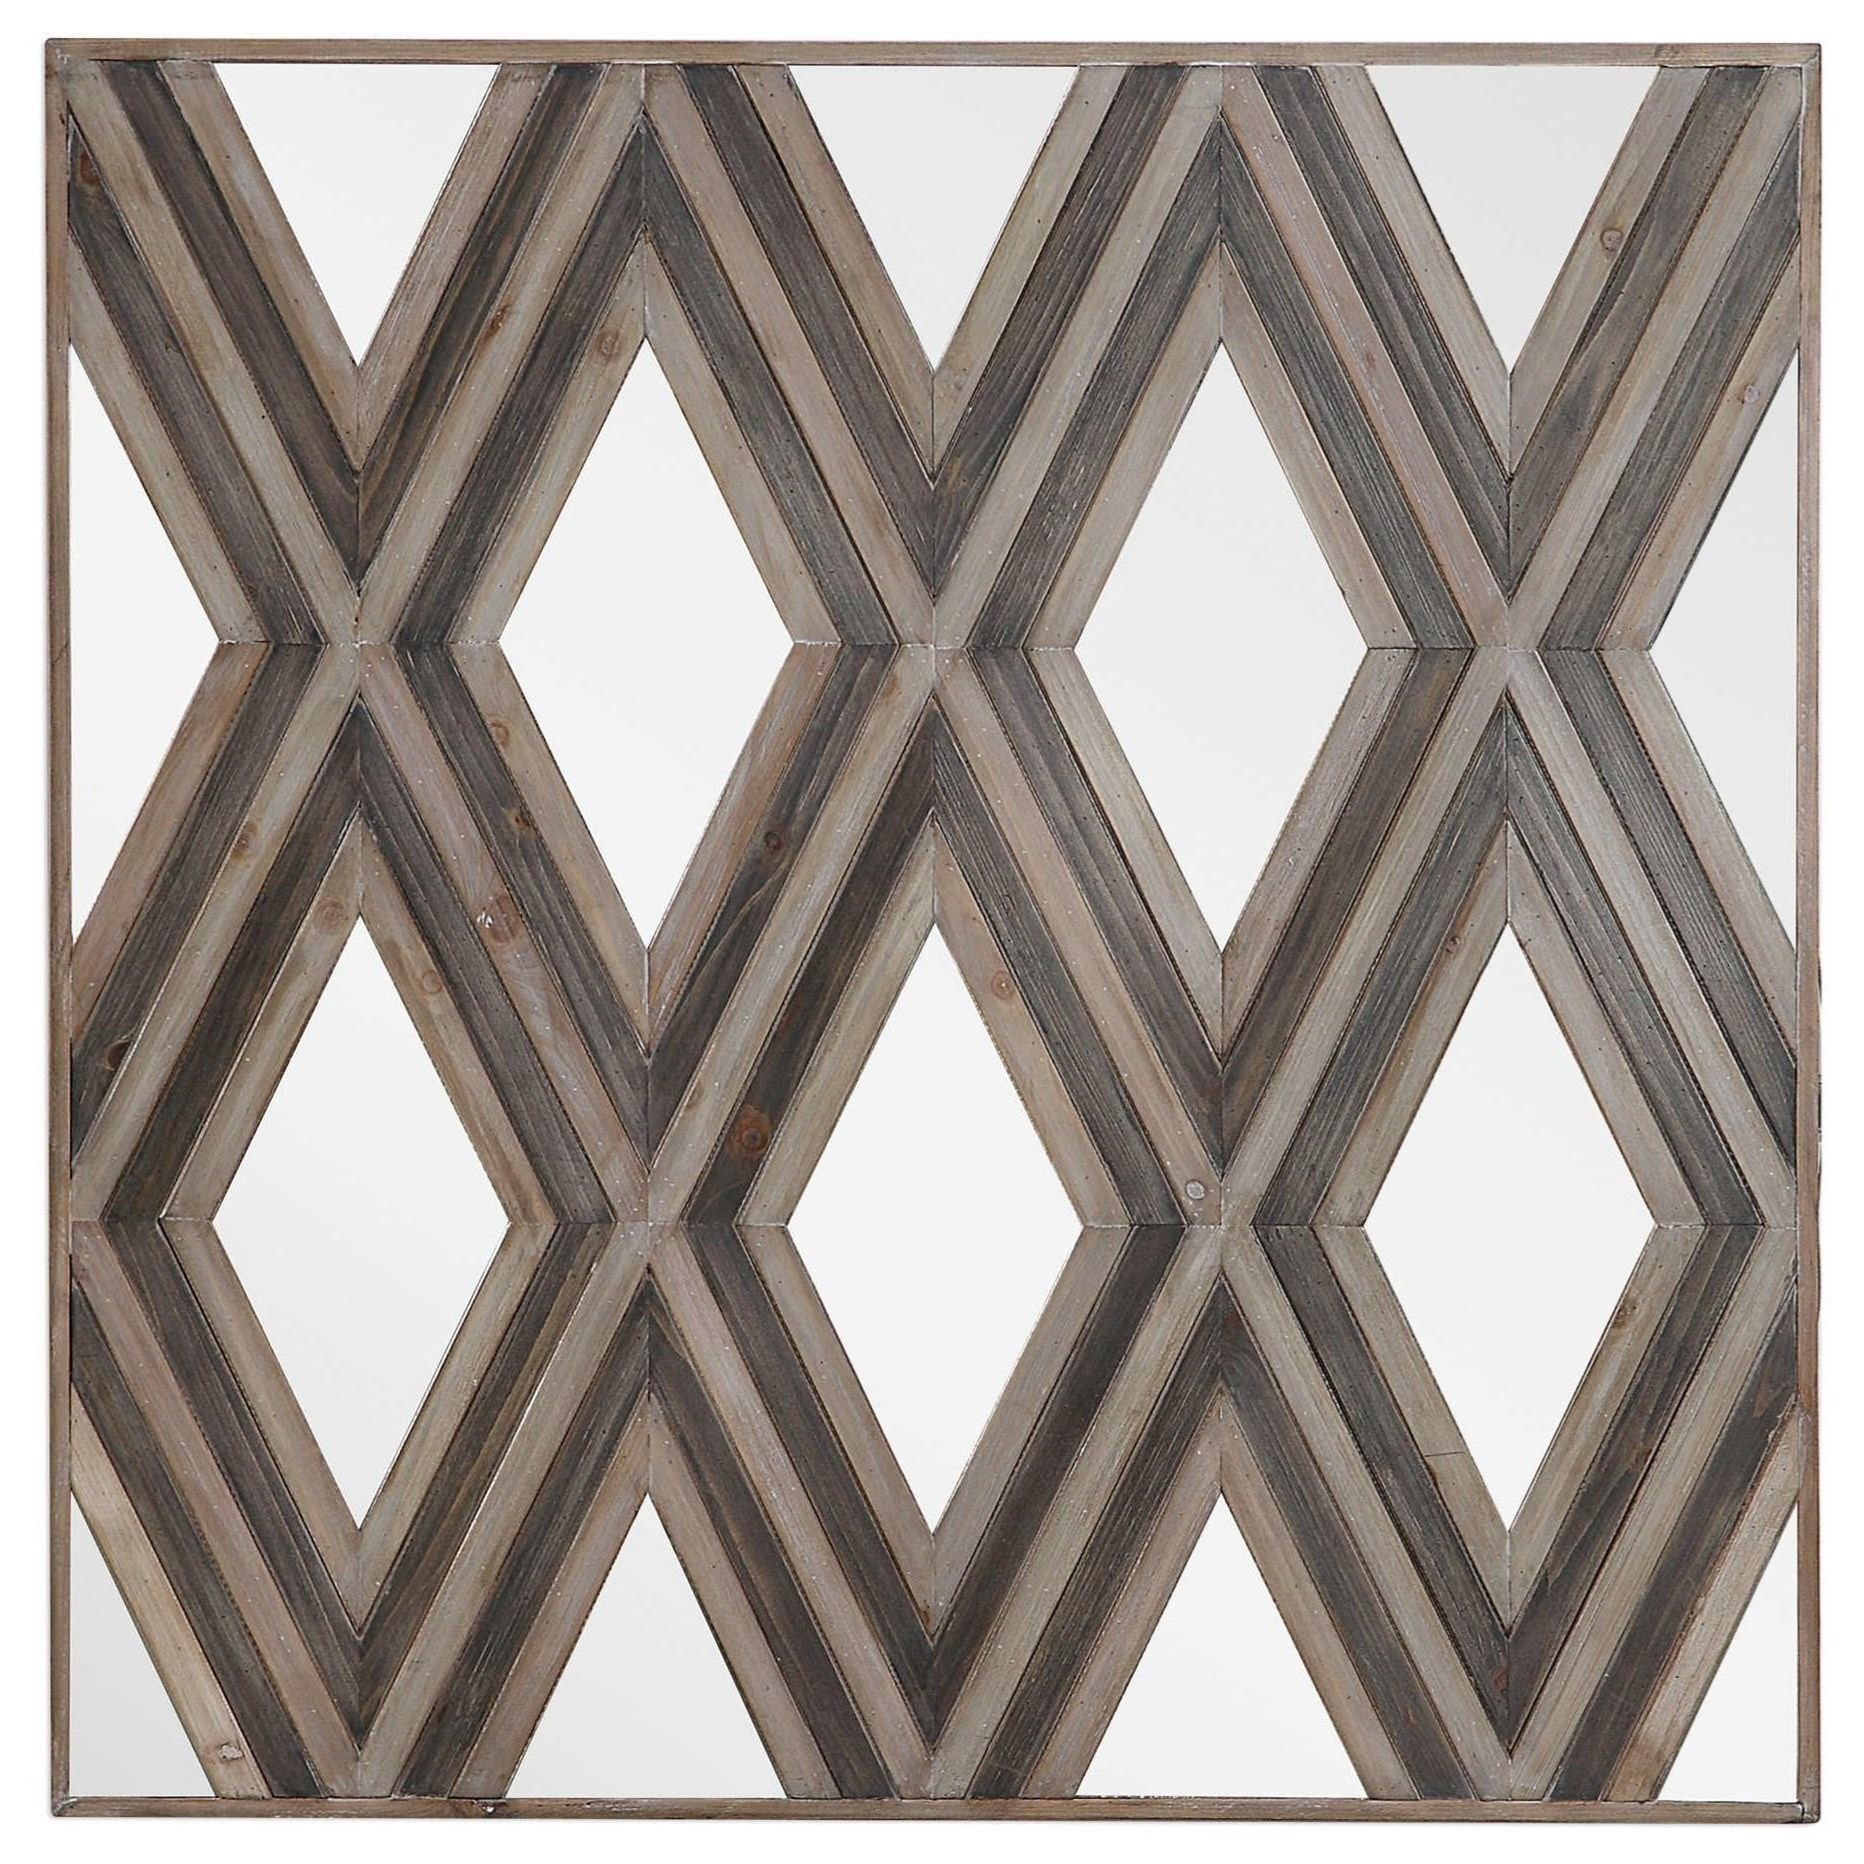 Alternative Wall Decor Tahira Geometric Square Wall Mirror by Uttermost at Miller Waldrop Furniture and Decor